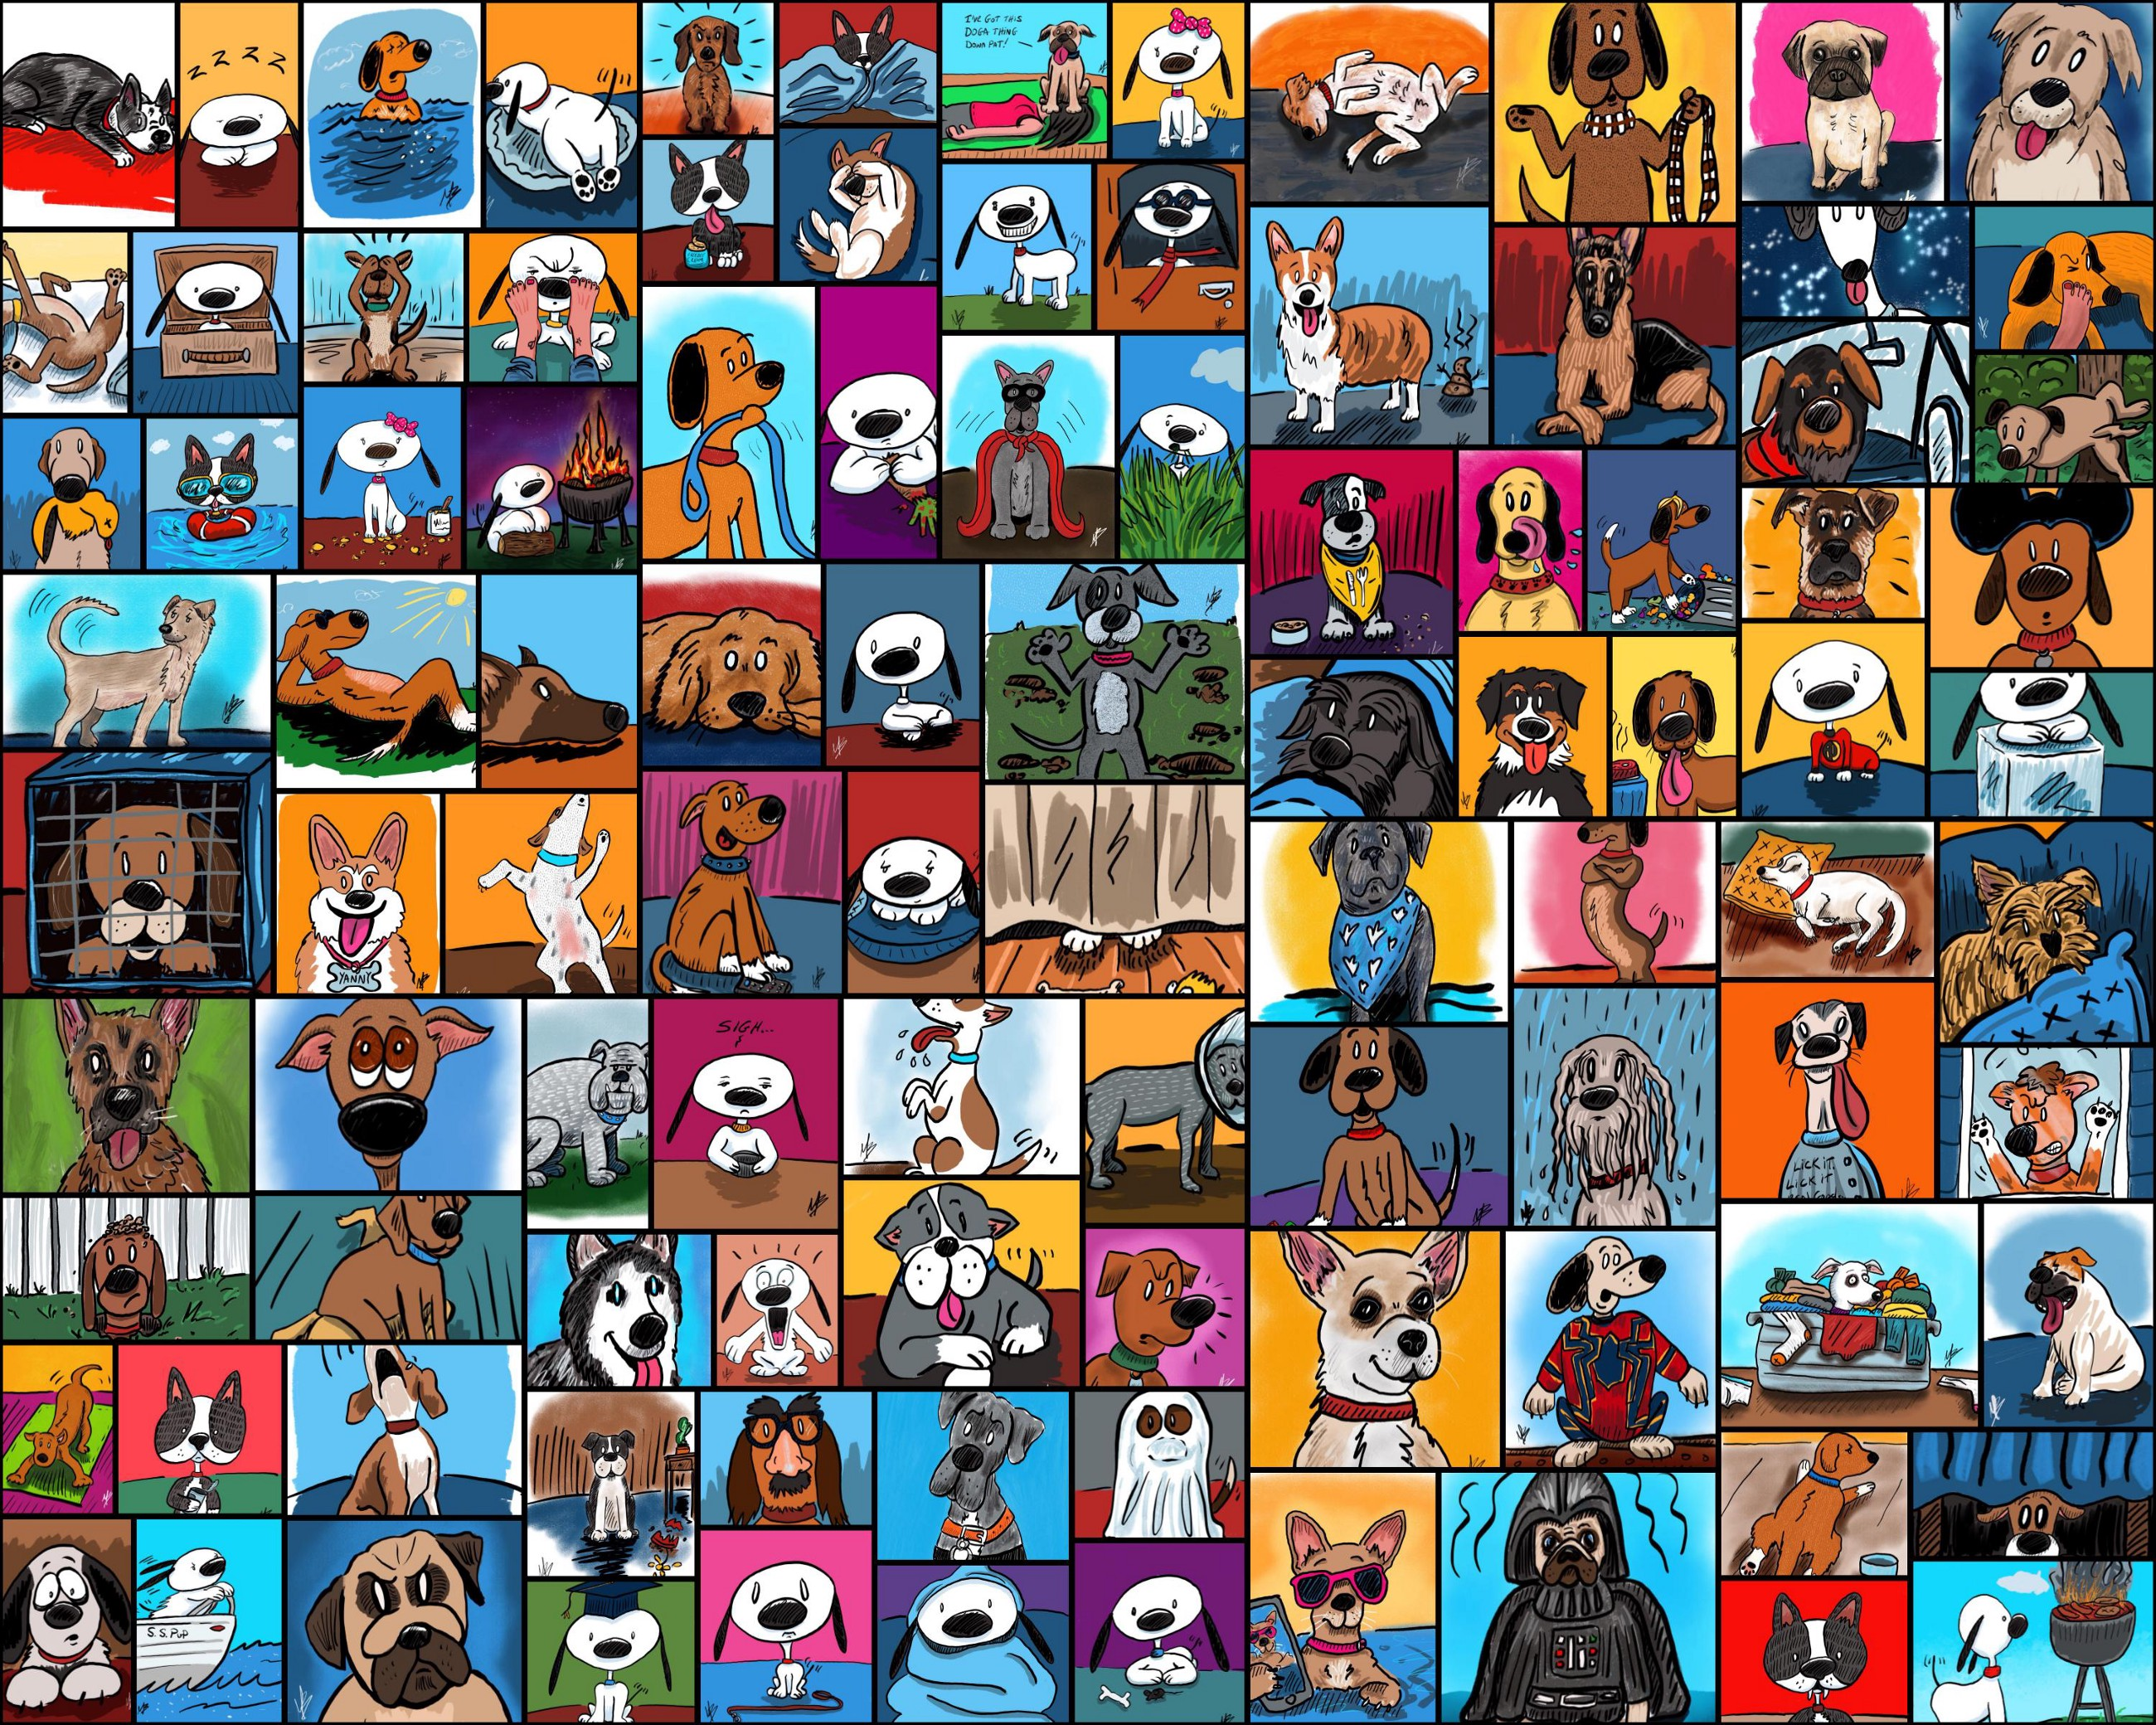 Image of: Png My 100 Day Project 100 Days Of Cartoon Dogs Art Marketing My 100 Day Project 100 Days Of Cartoon Dogs Art Marketing